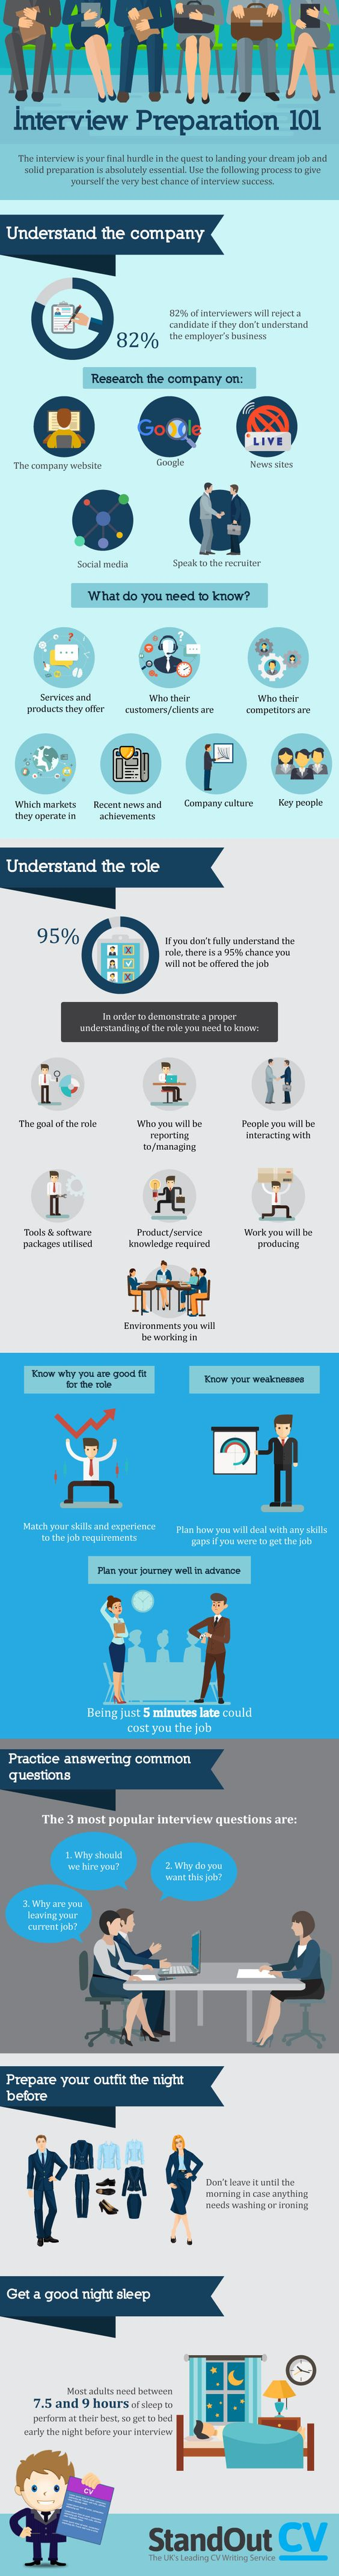 Interview Preparation 101 >> #Job interviews can be a daunting prospect, but good preparation will remove a lot of the stress!